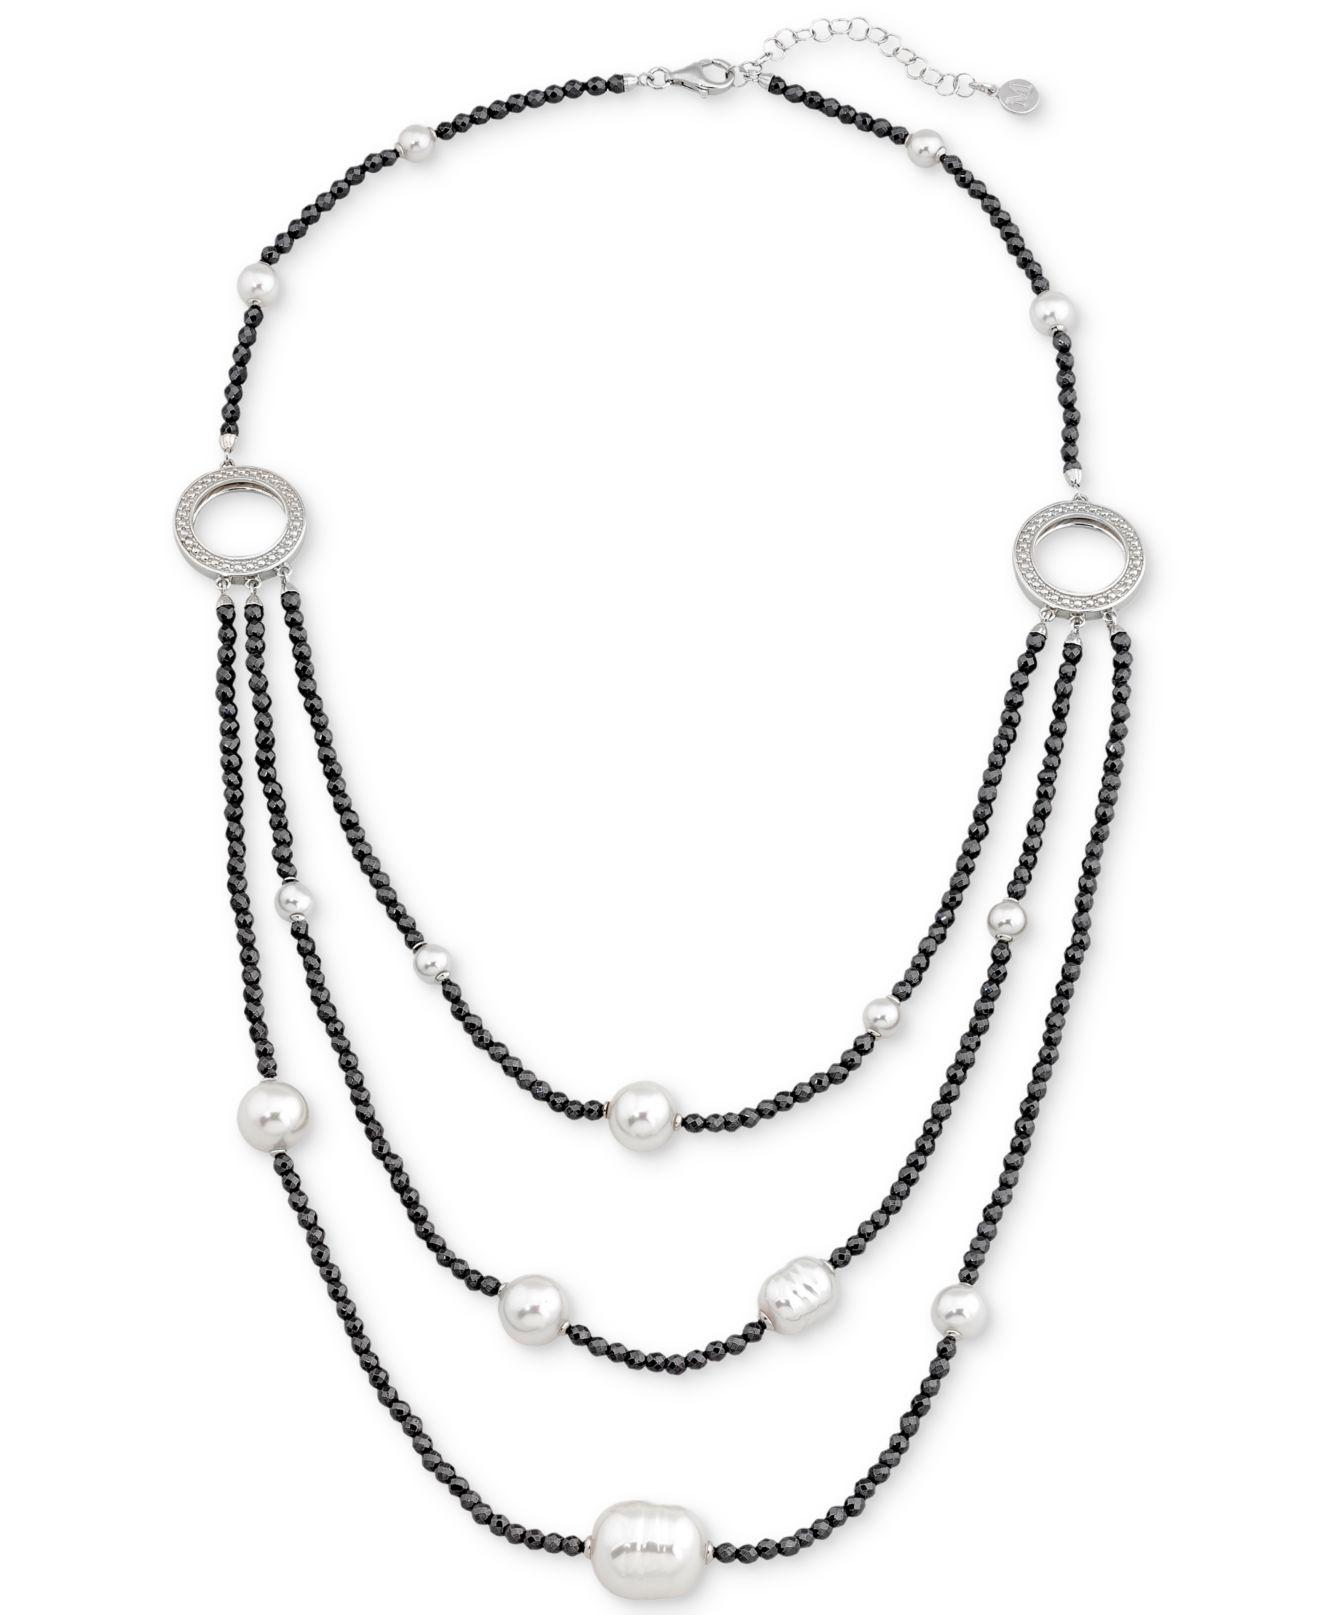 rickis hi row hematite res rhodium mixed metal necklace multi